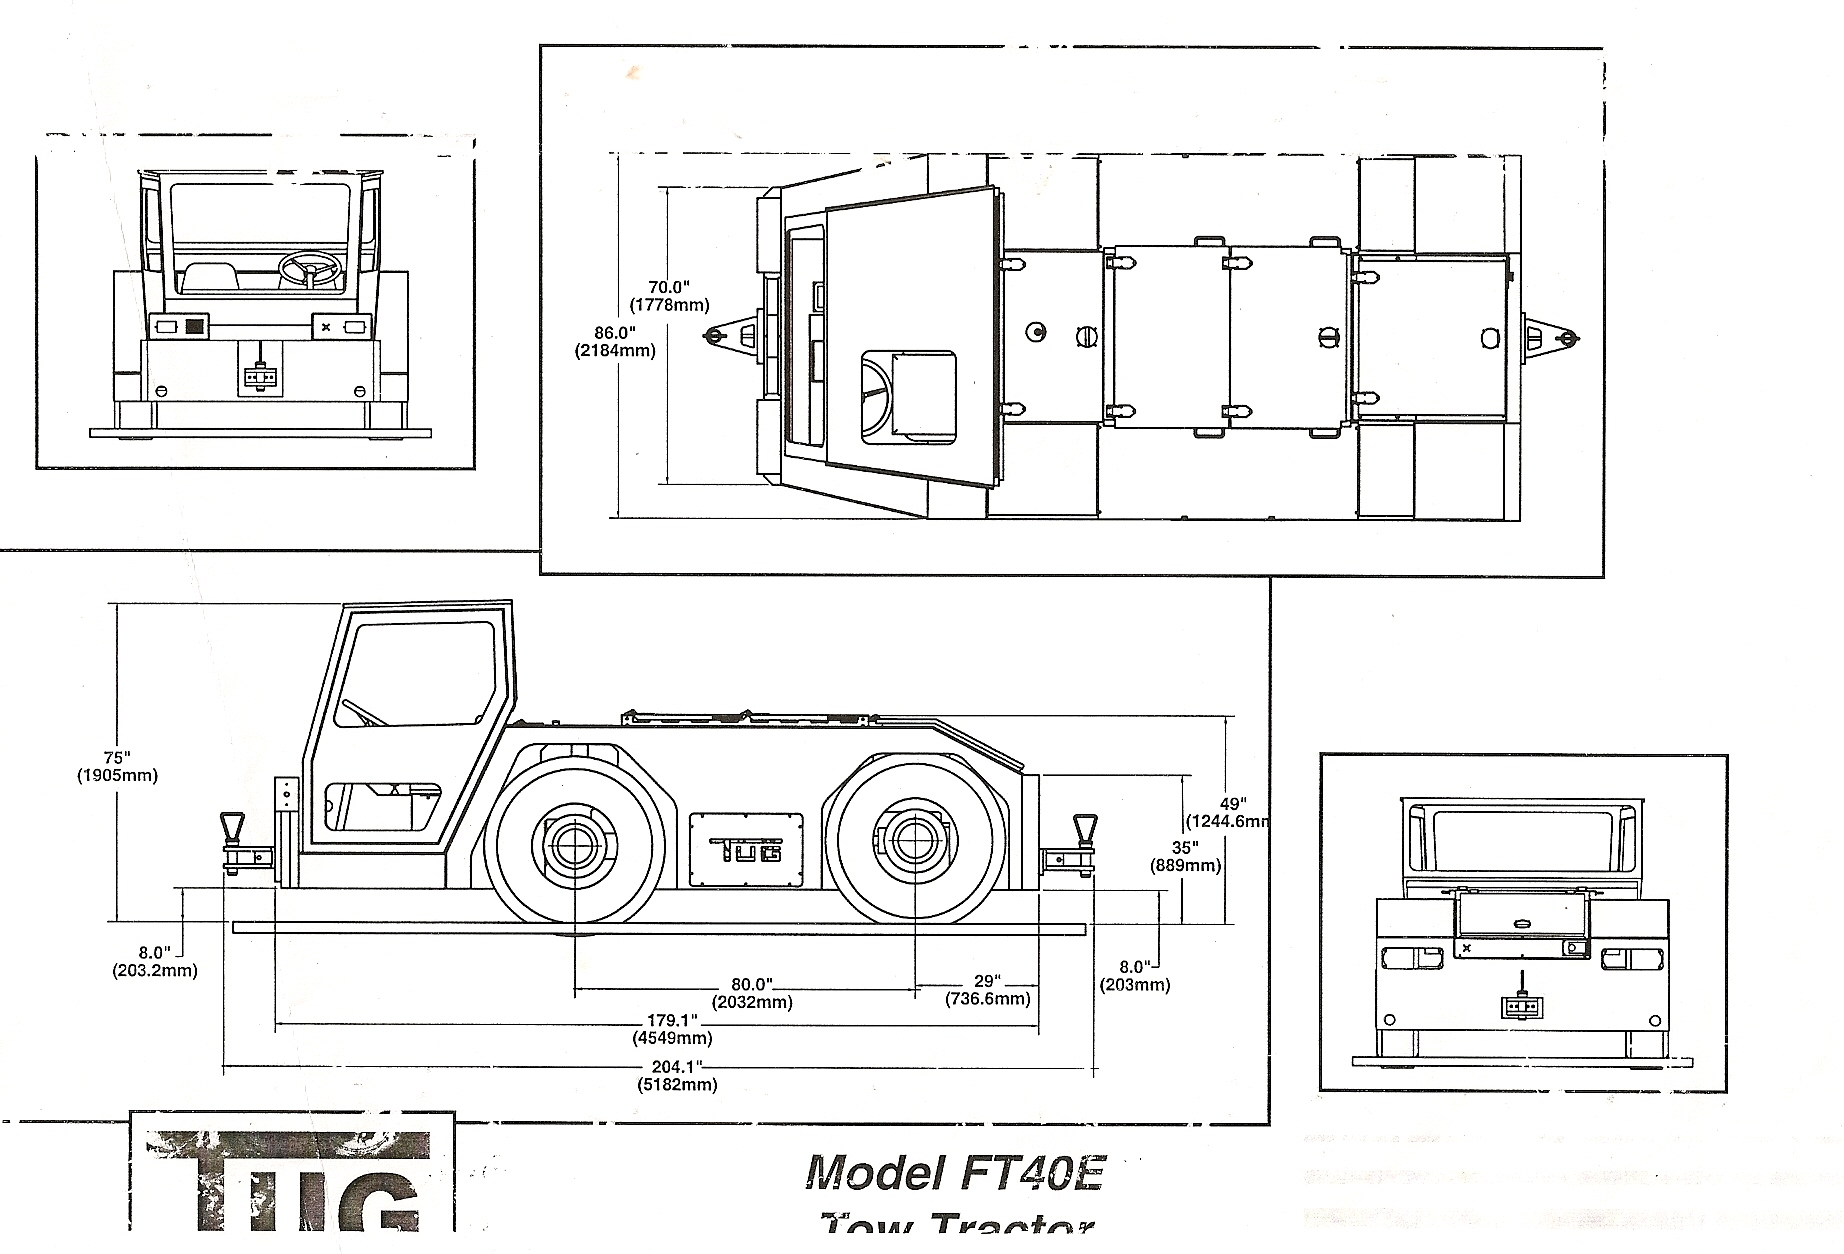 tractor trailer dimensions drawings